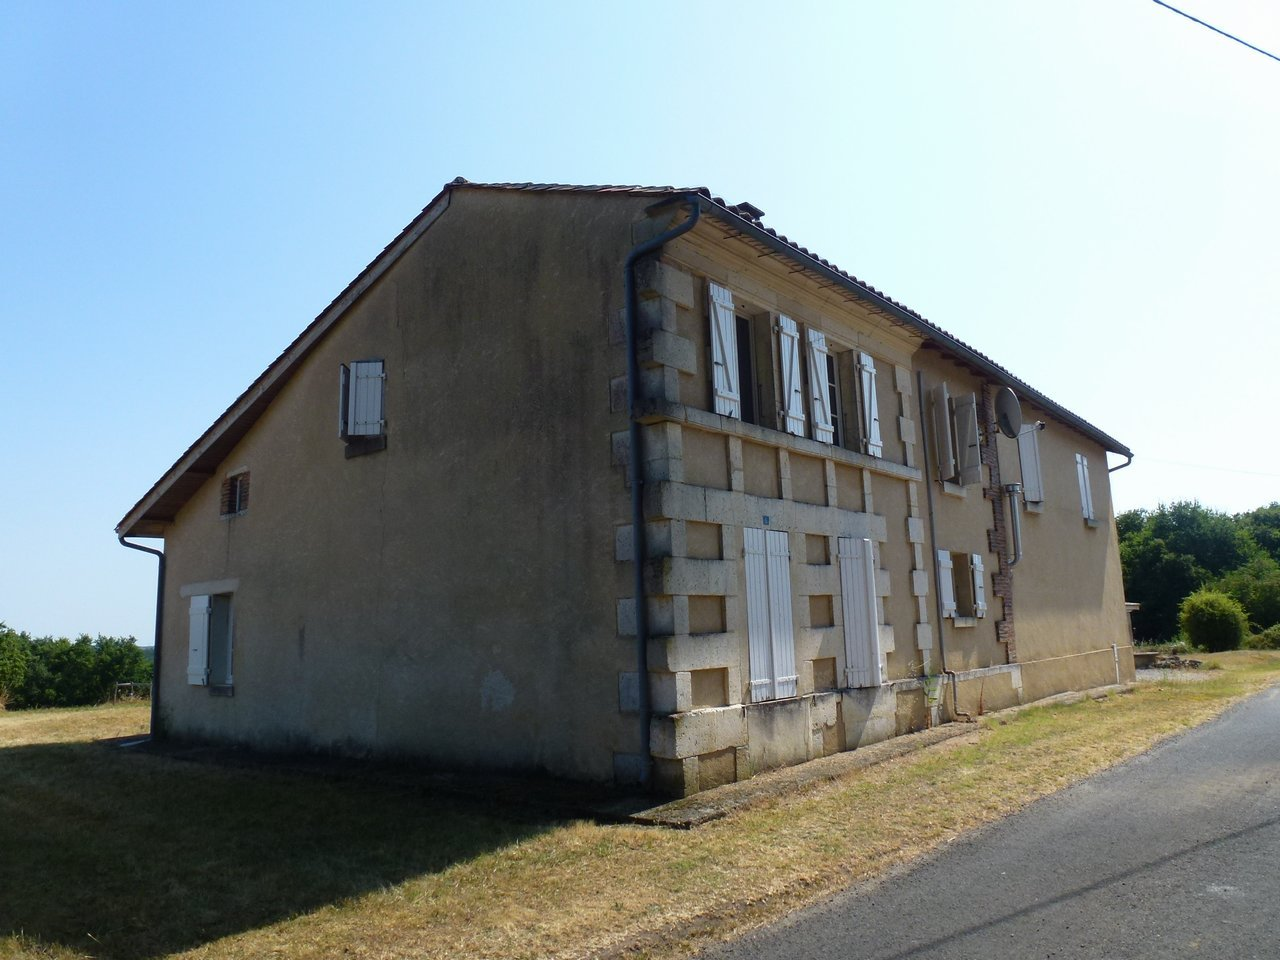 Property with 3 bedrooms, 2 shower rooms, and large plot of land, ready to move into